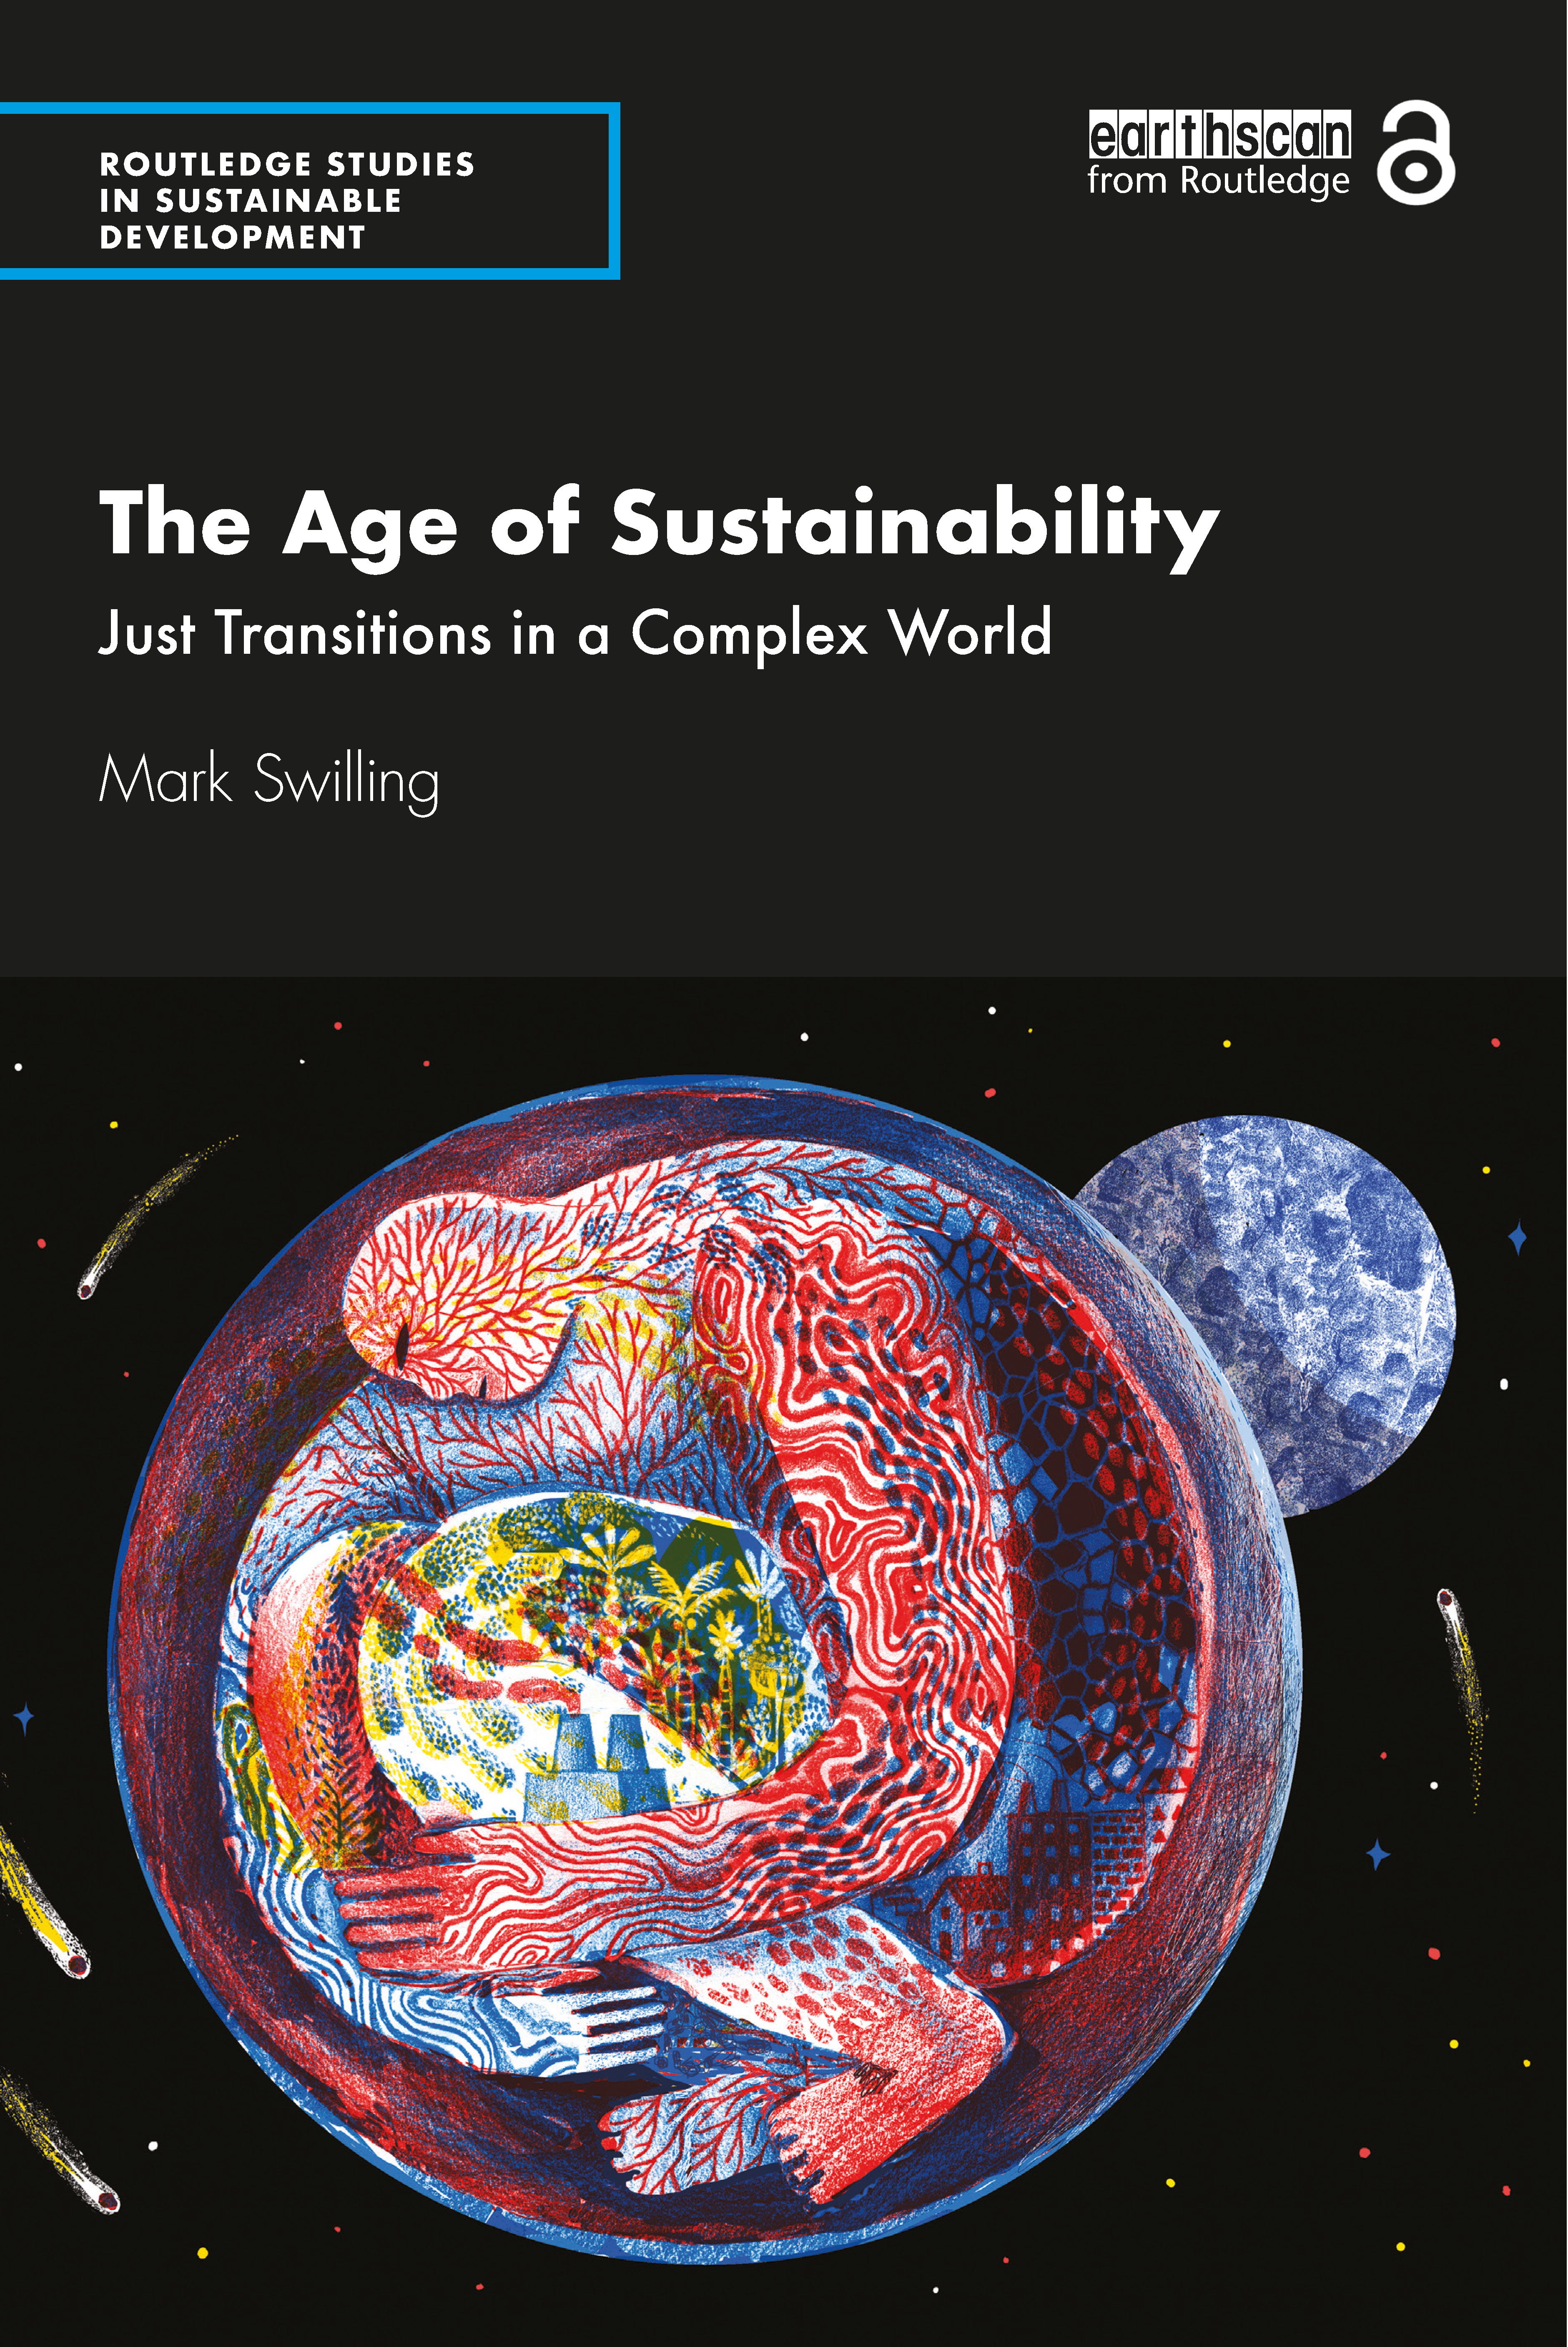 The Age of Sustainability: Just Transitions in a Complex World book cover